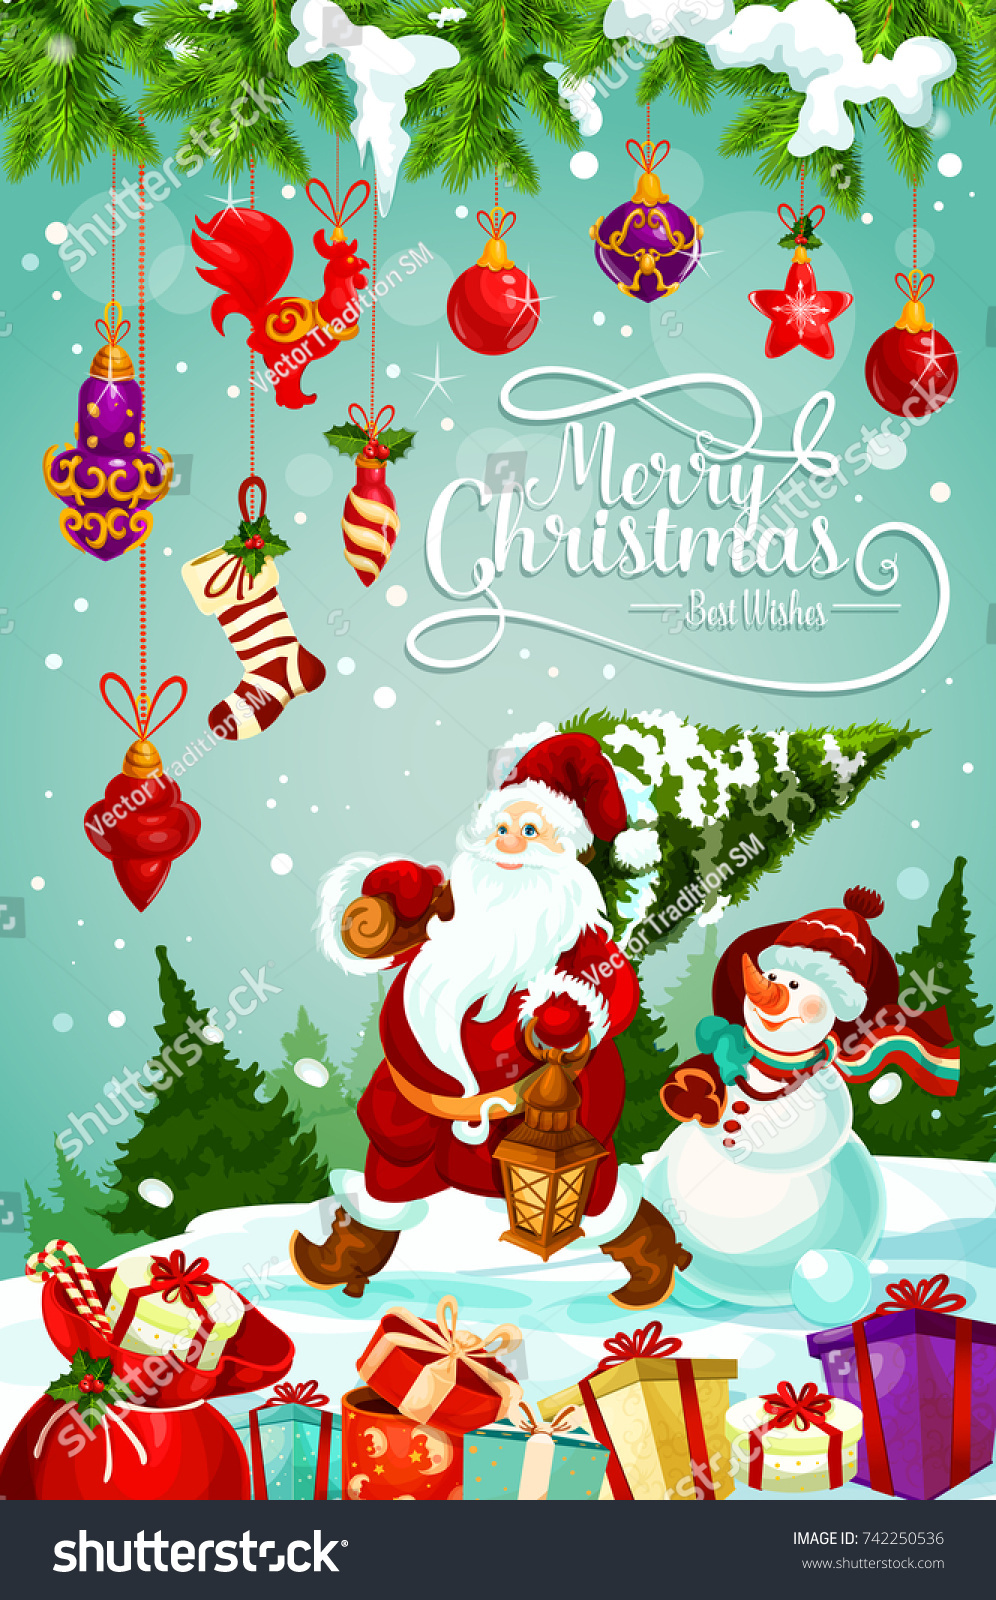 Merry Christmas Greeting Card Design Santa Stock Vector 742250536